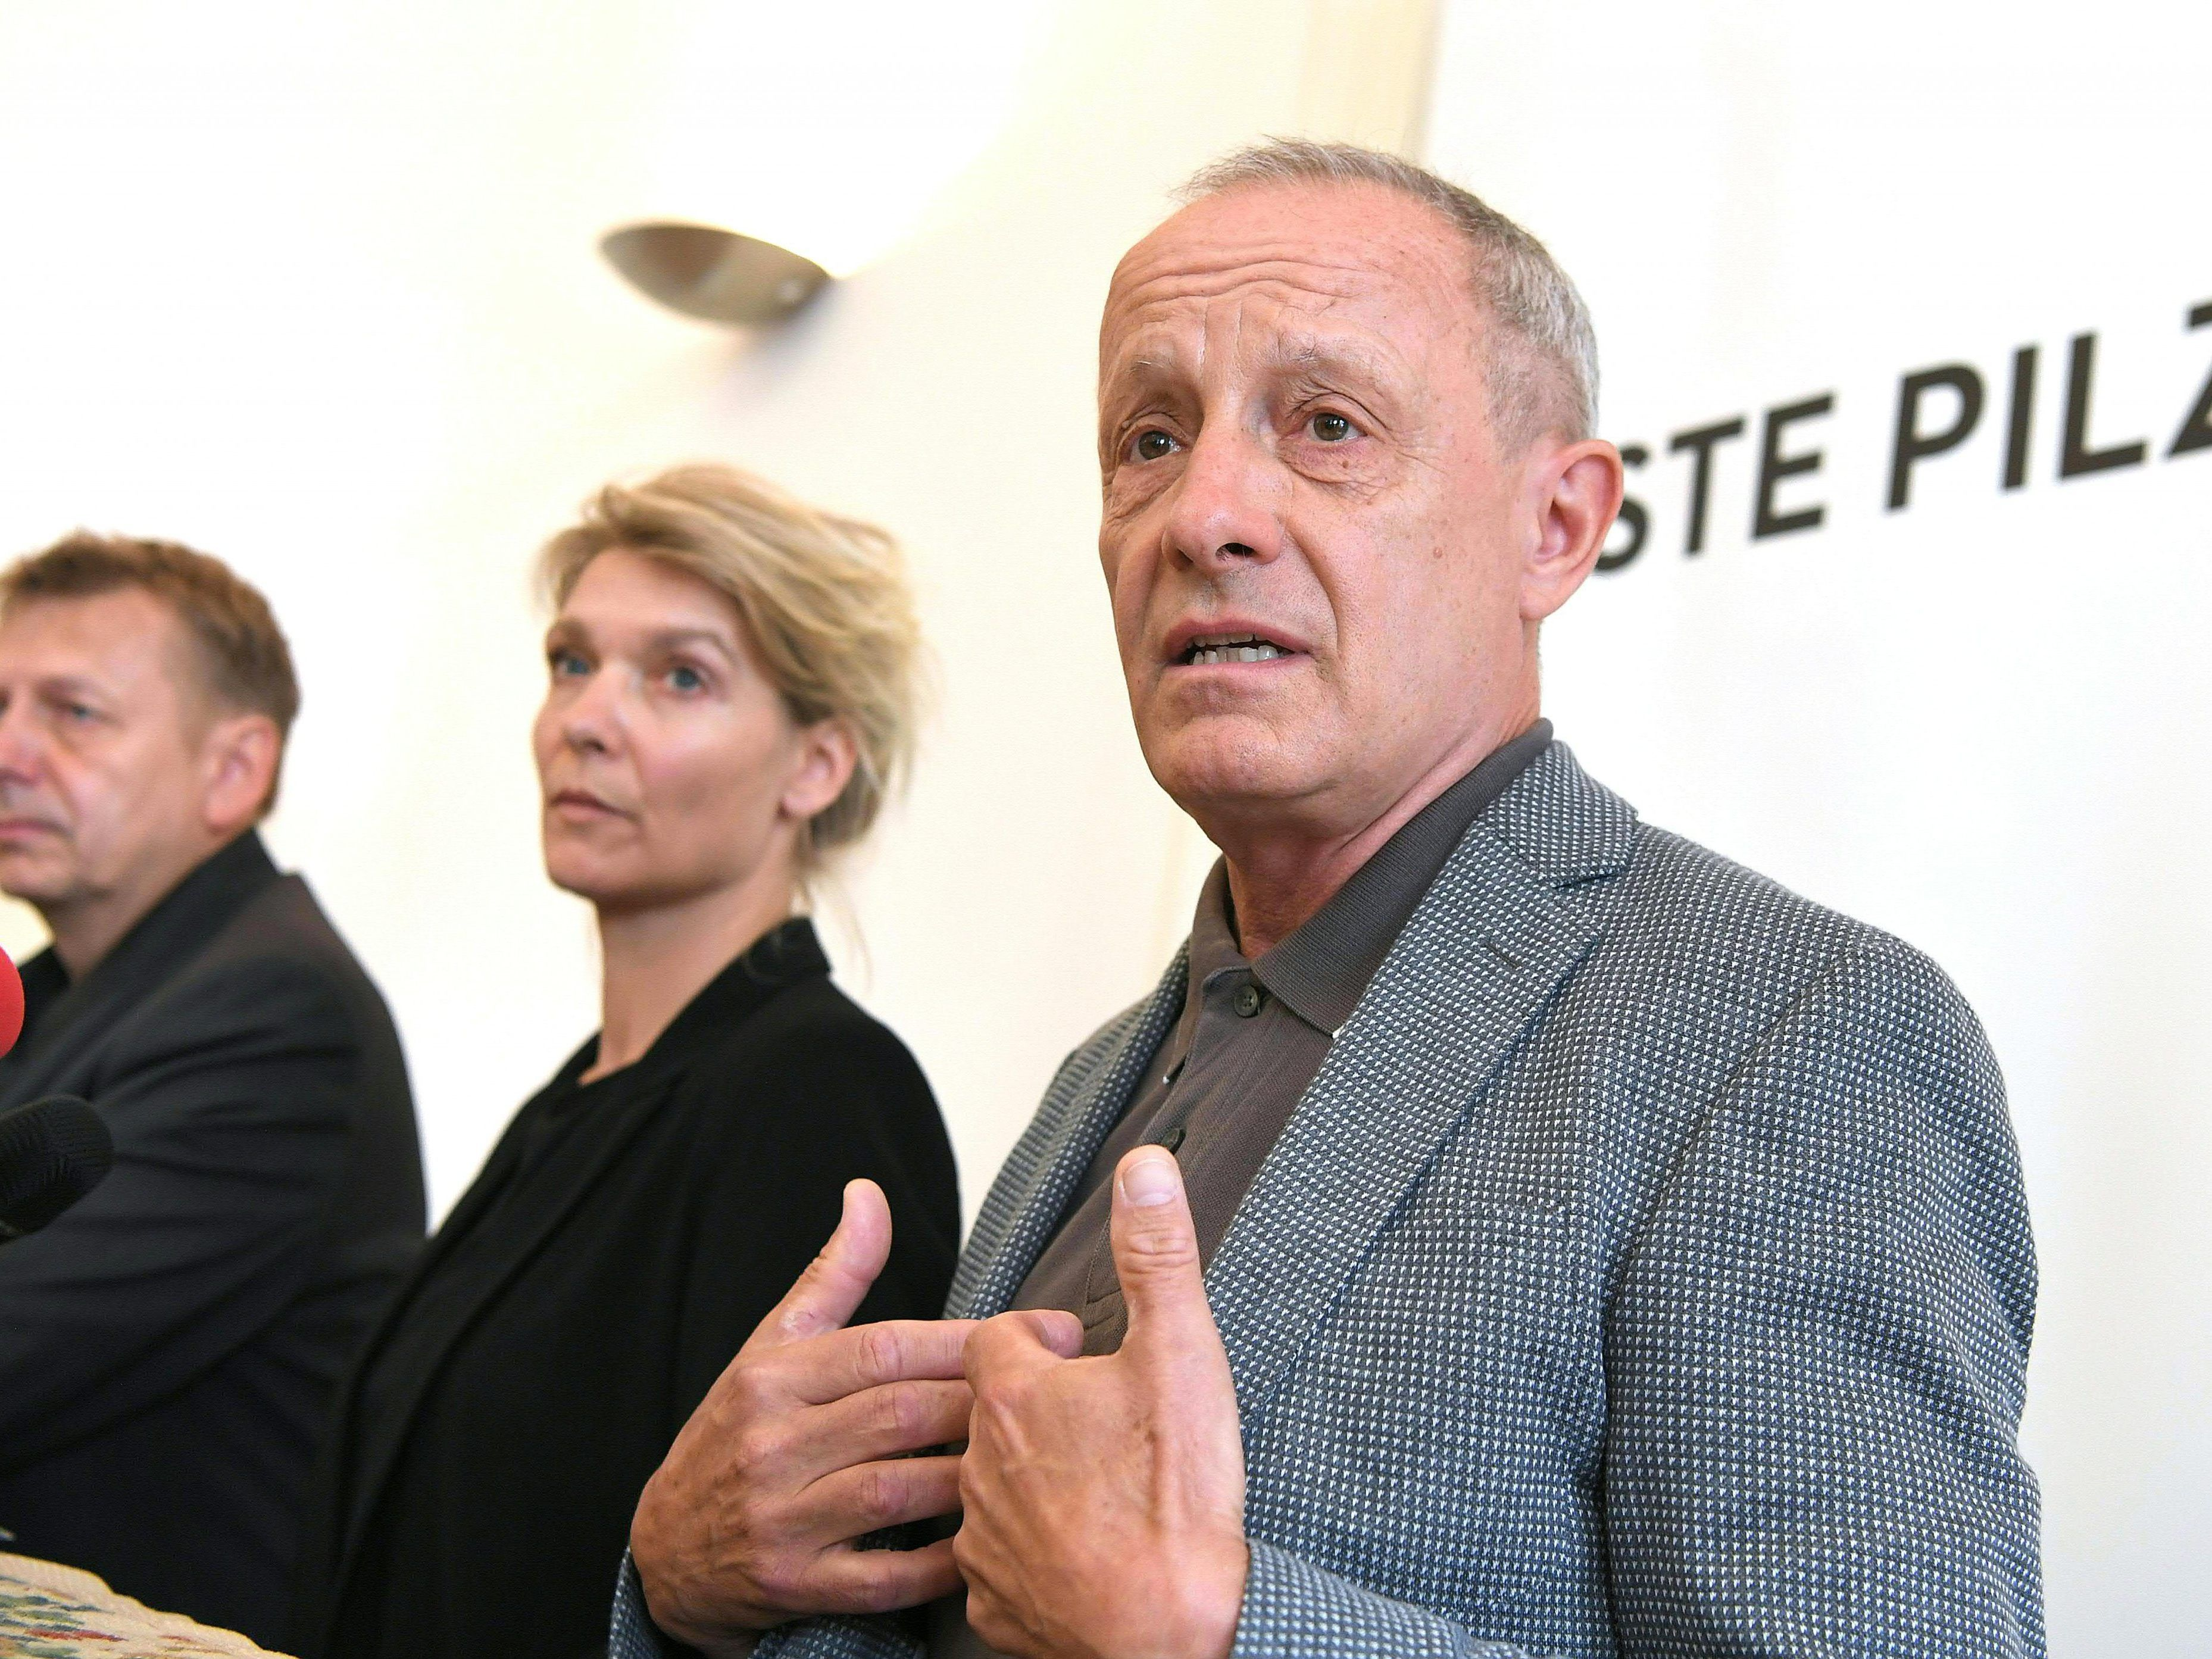 Peter Pilz wechselt in den Nationalrat.